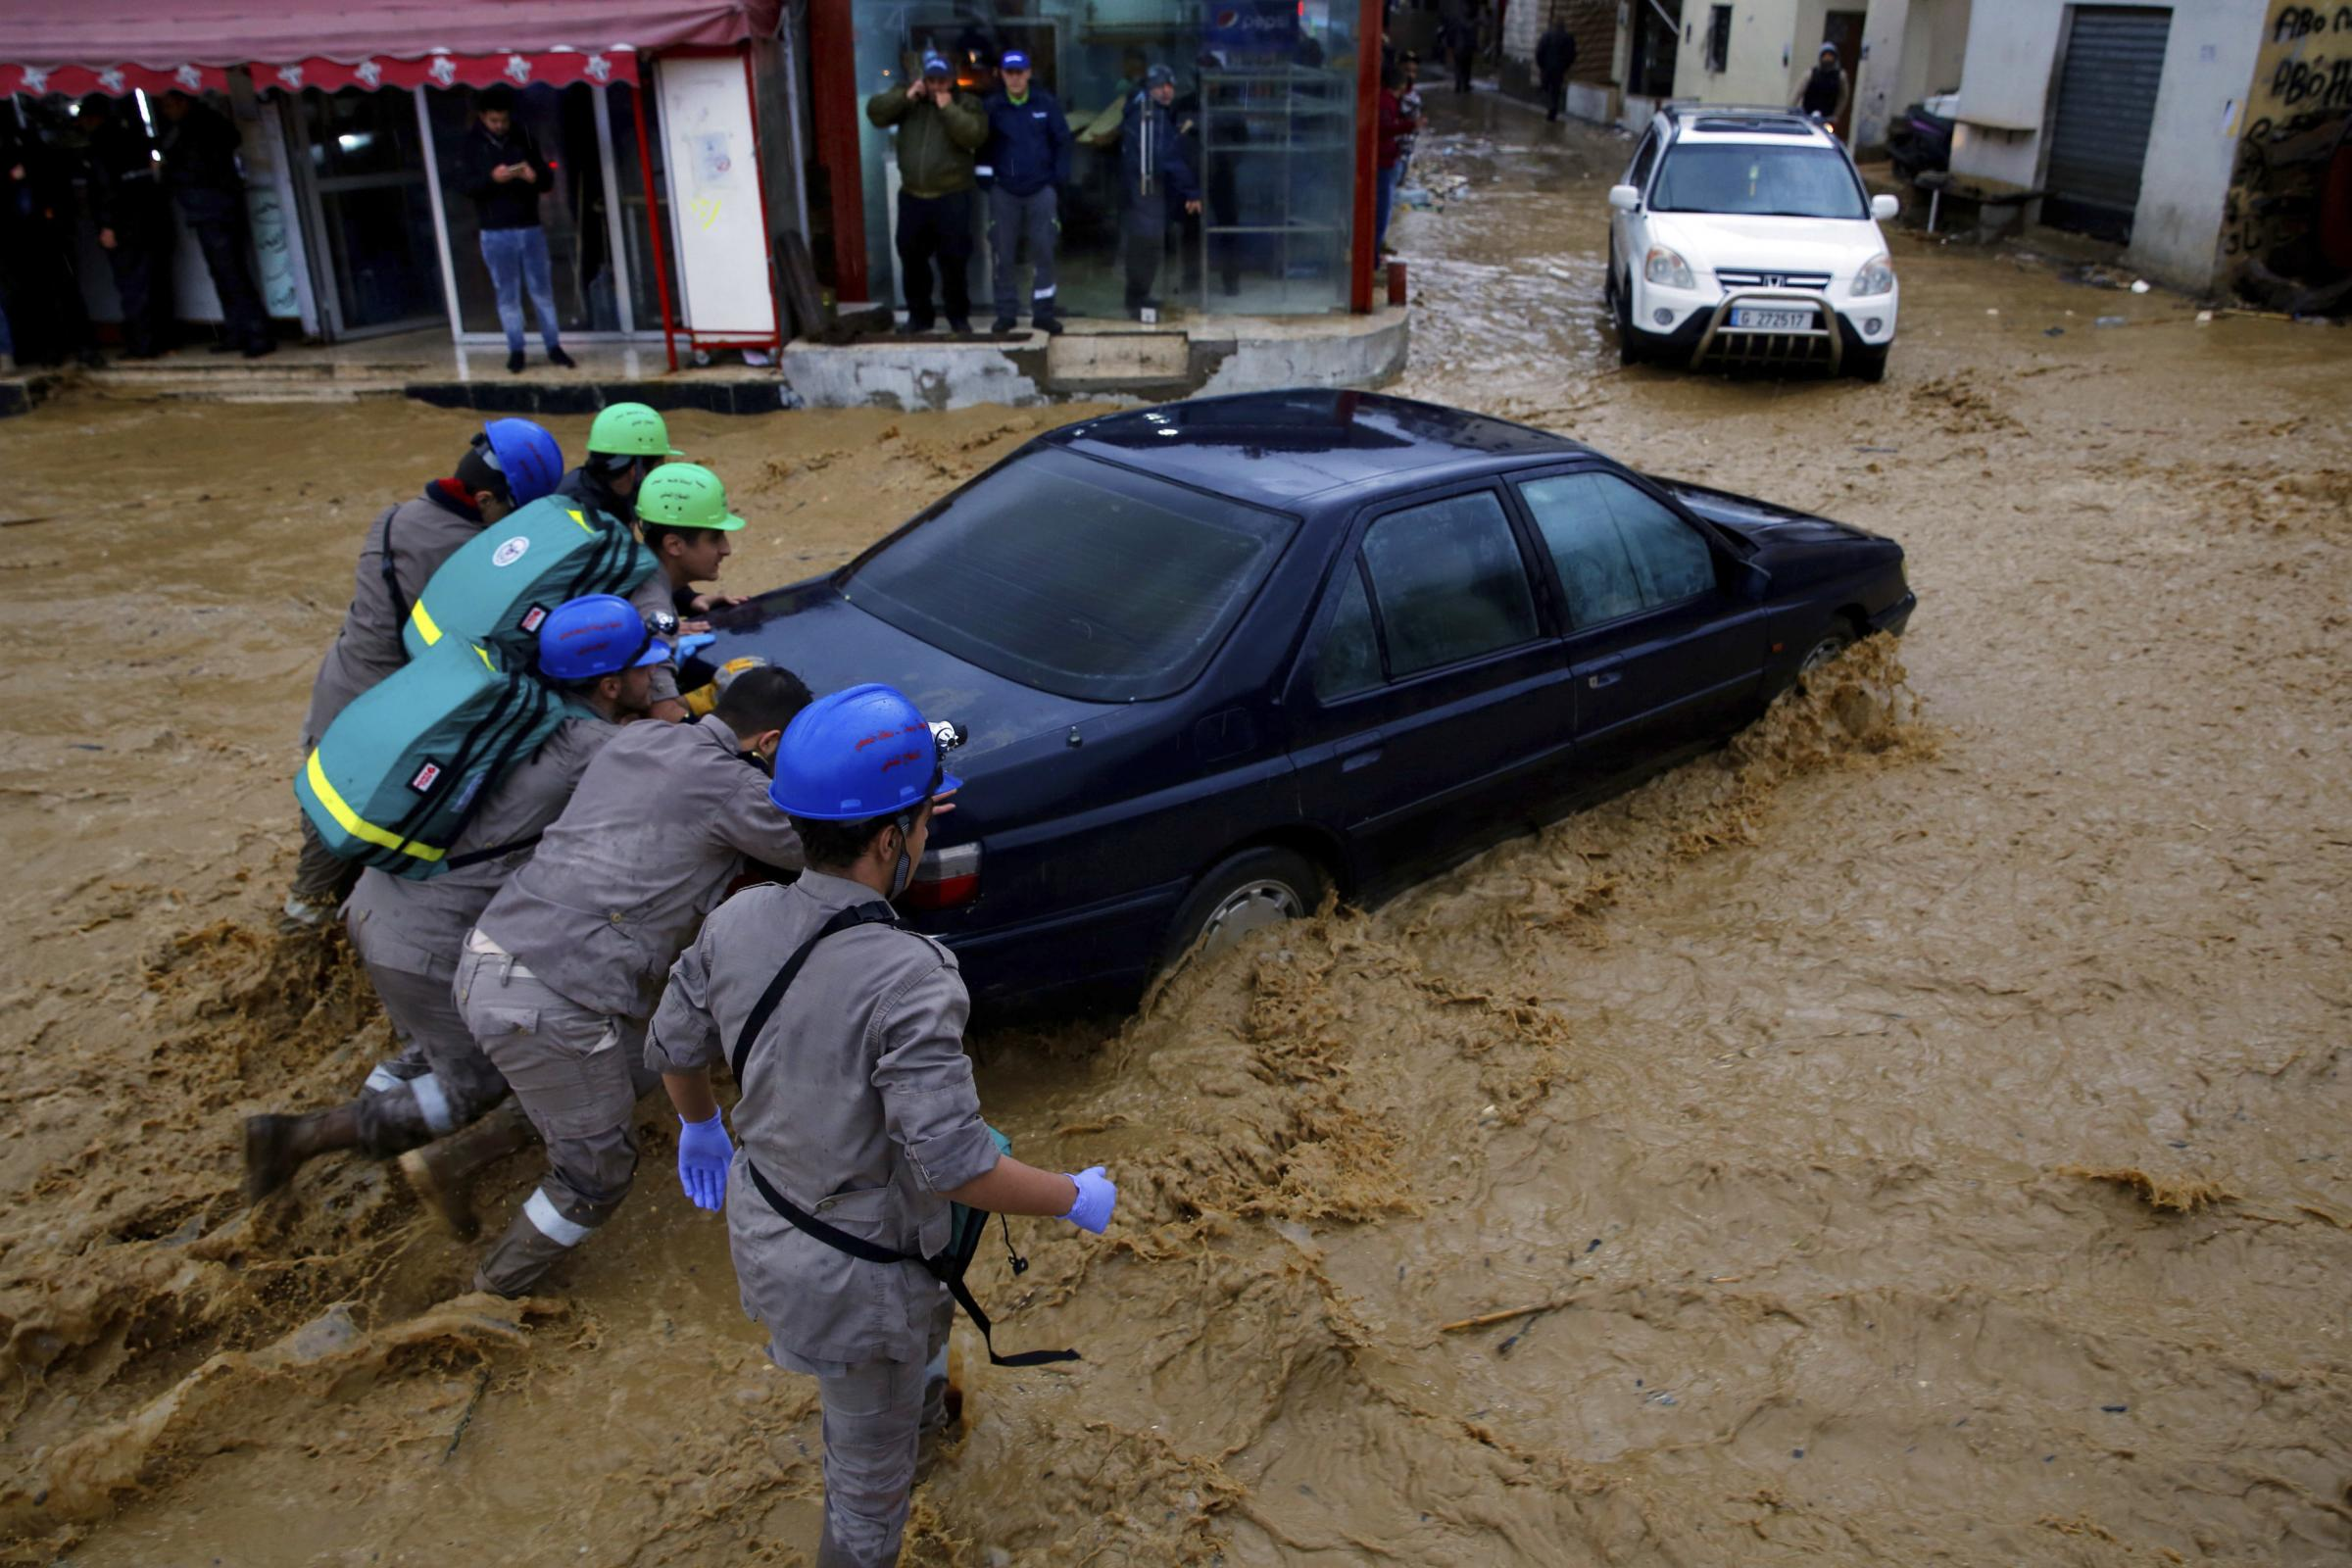 Civil Defense workers struggle to push a stranded car on a street in Beirut, Lebanon